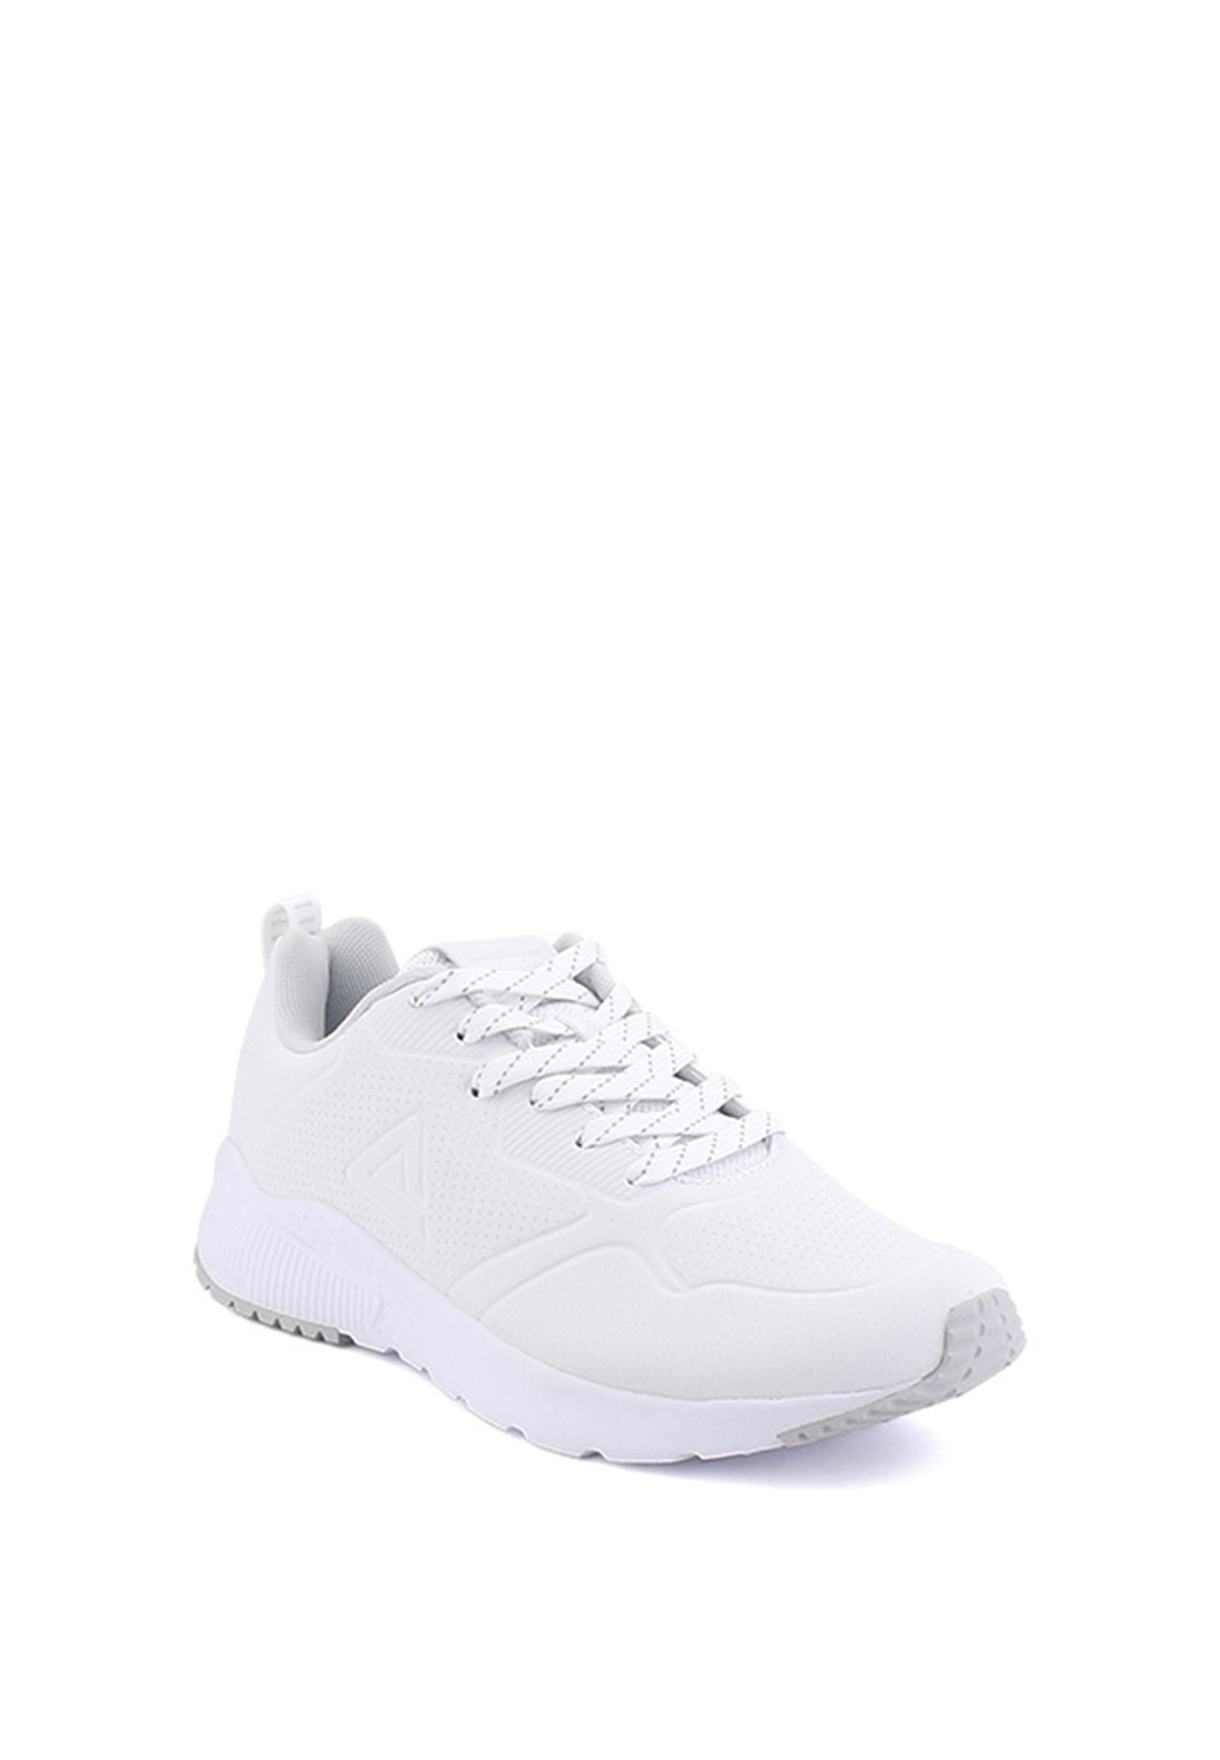 Urban Casual Shoes